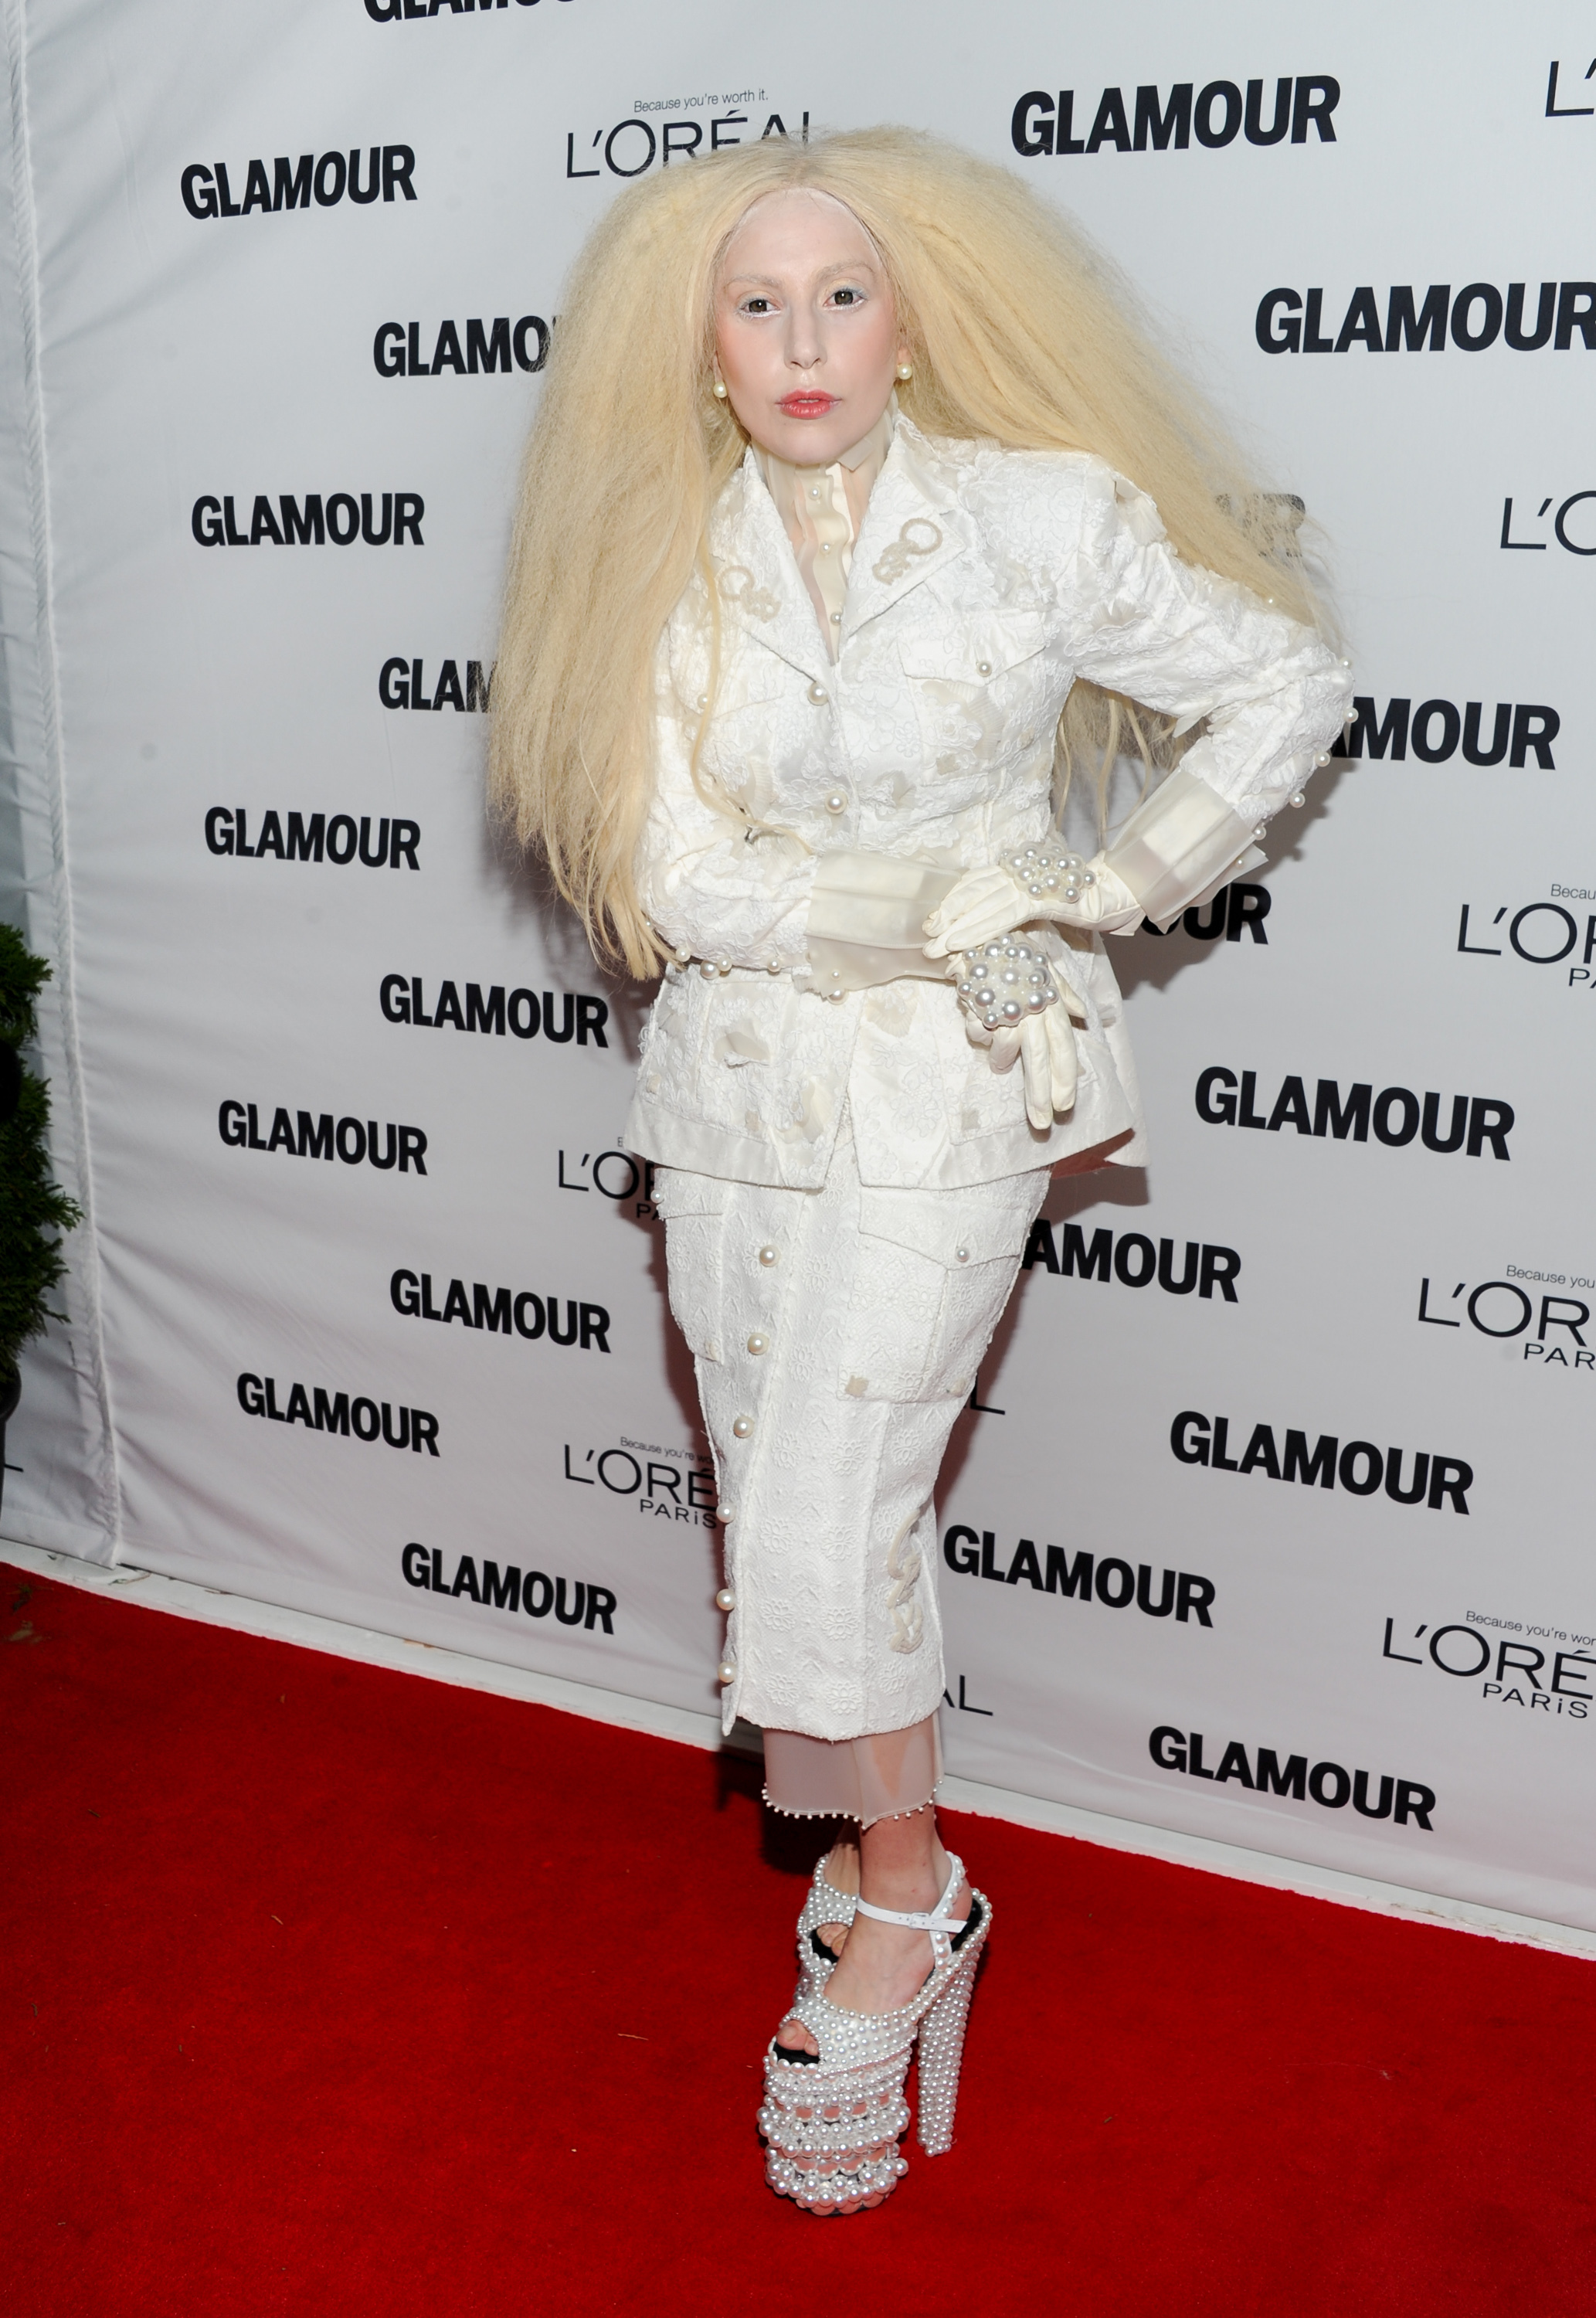 Lady Gaga Glamour awards